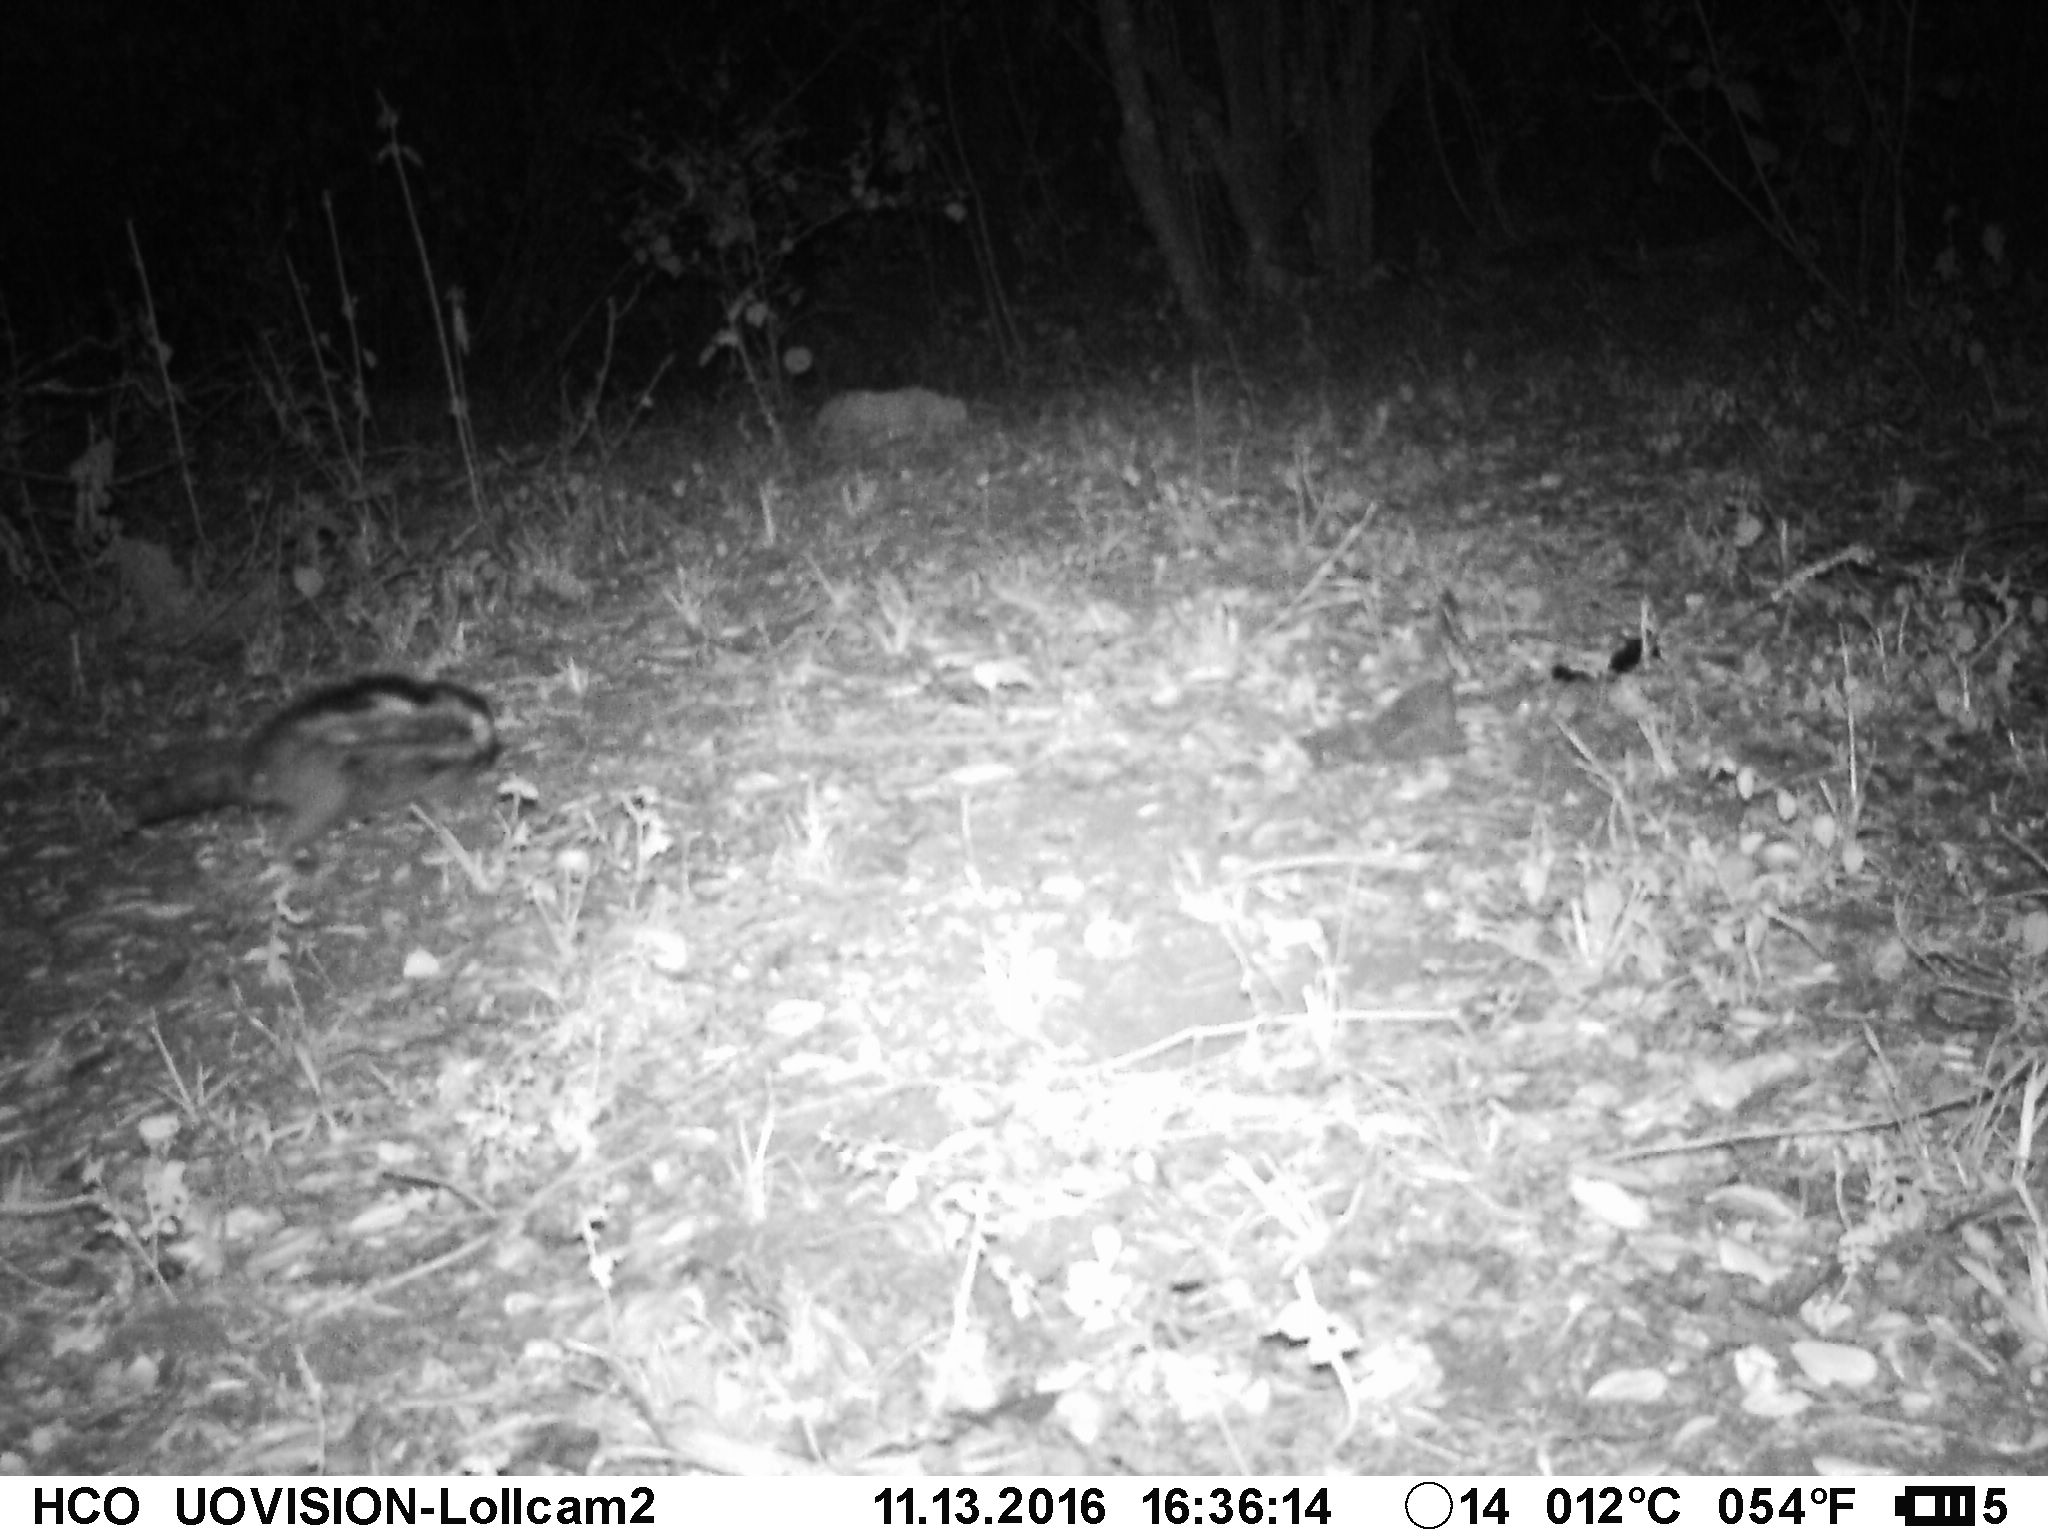 Maned (crested) rat Lophiomys imhausi in riverine forest at 1800 m asl along the Timau River, Lolldaiga Hills Ranch. Photograph obtained on 13 November 2016 by the Zoological Society of London/Lolldaiga Hills Research Programme's Camera Trapping Project.